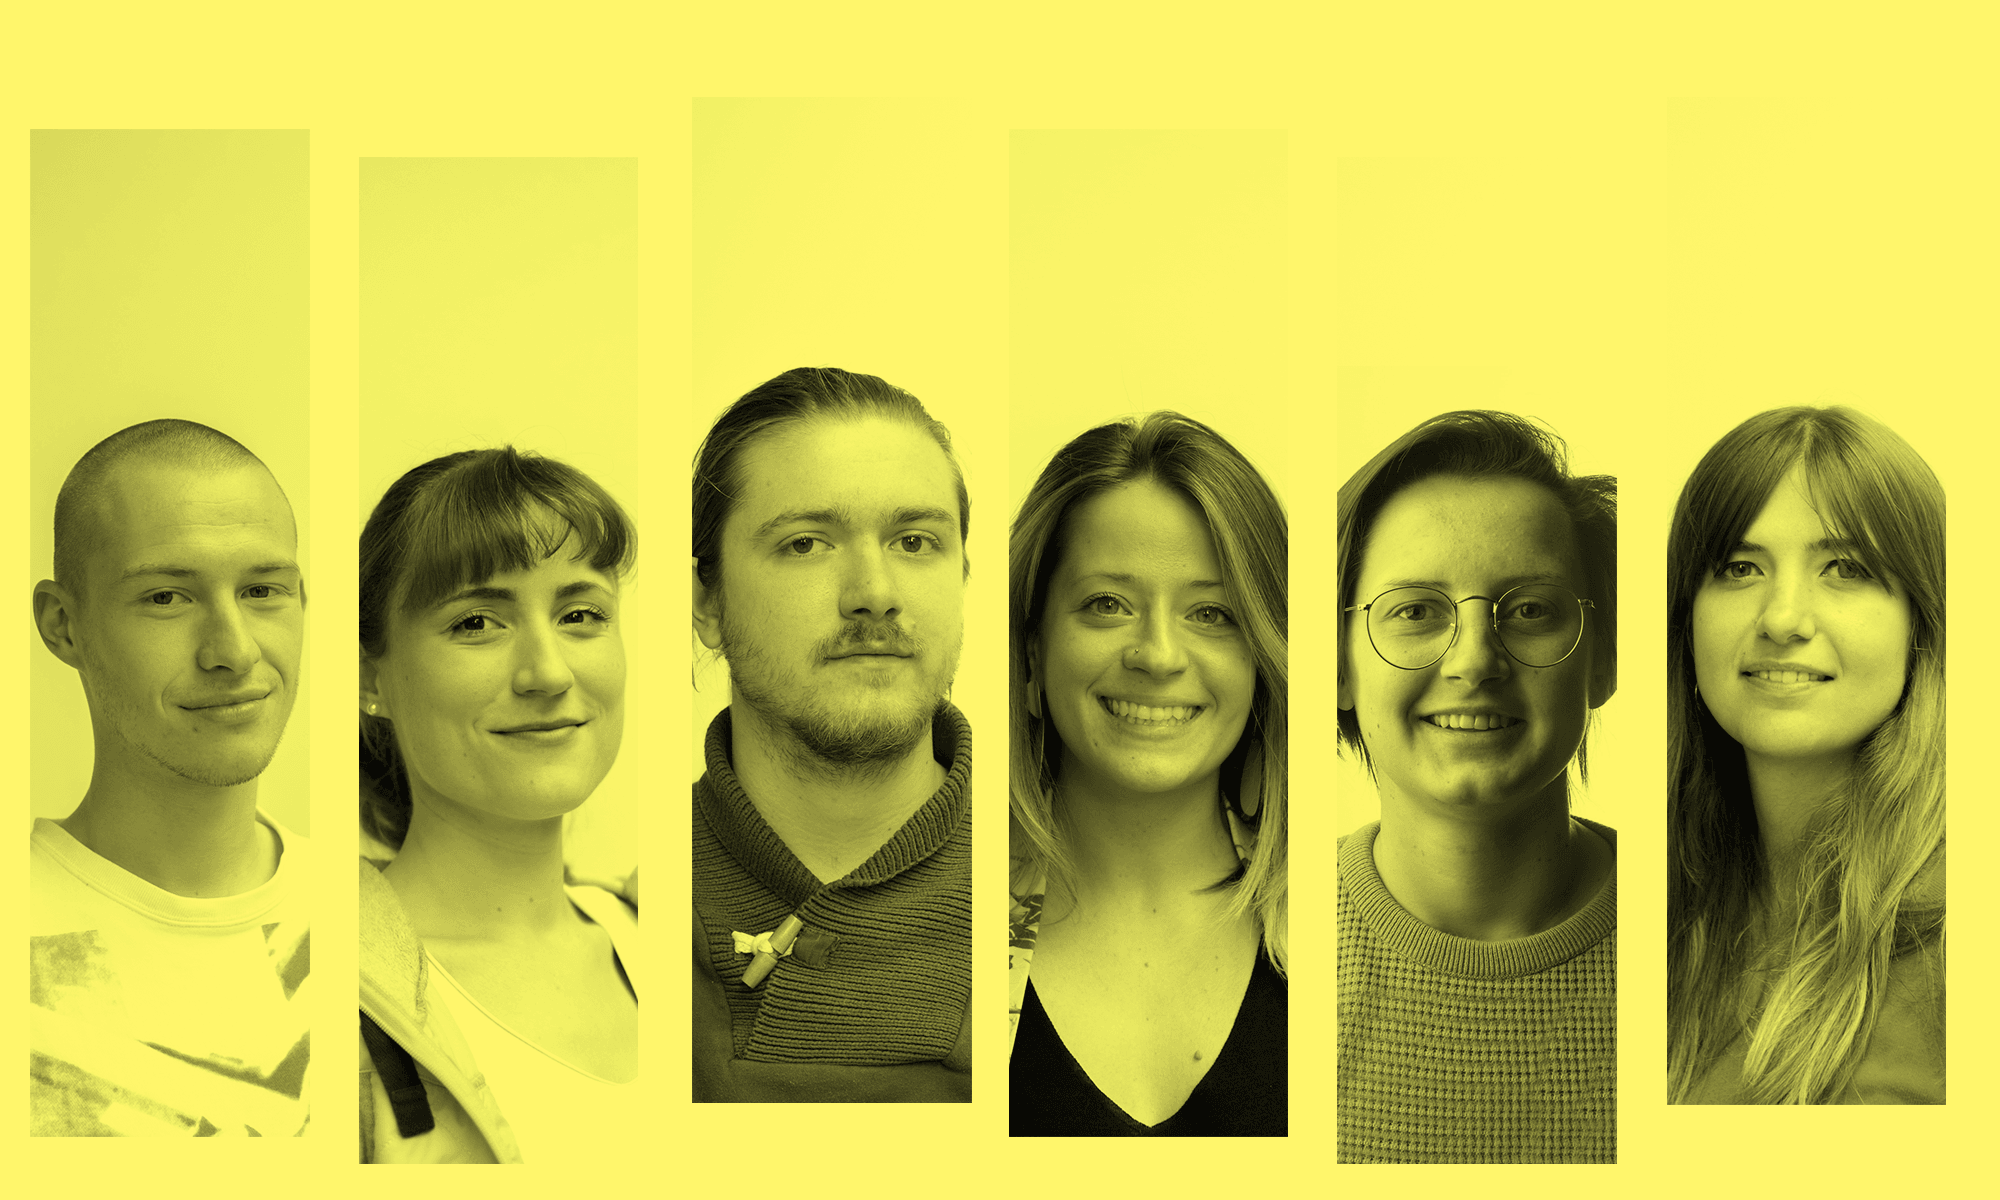 New talent at the Chase community: welcome Bavo, An, Wannes, Iva, Joke and Ana!